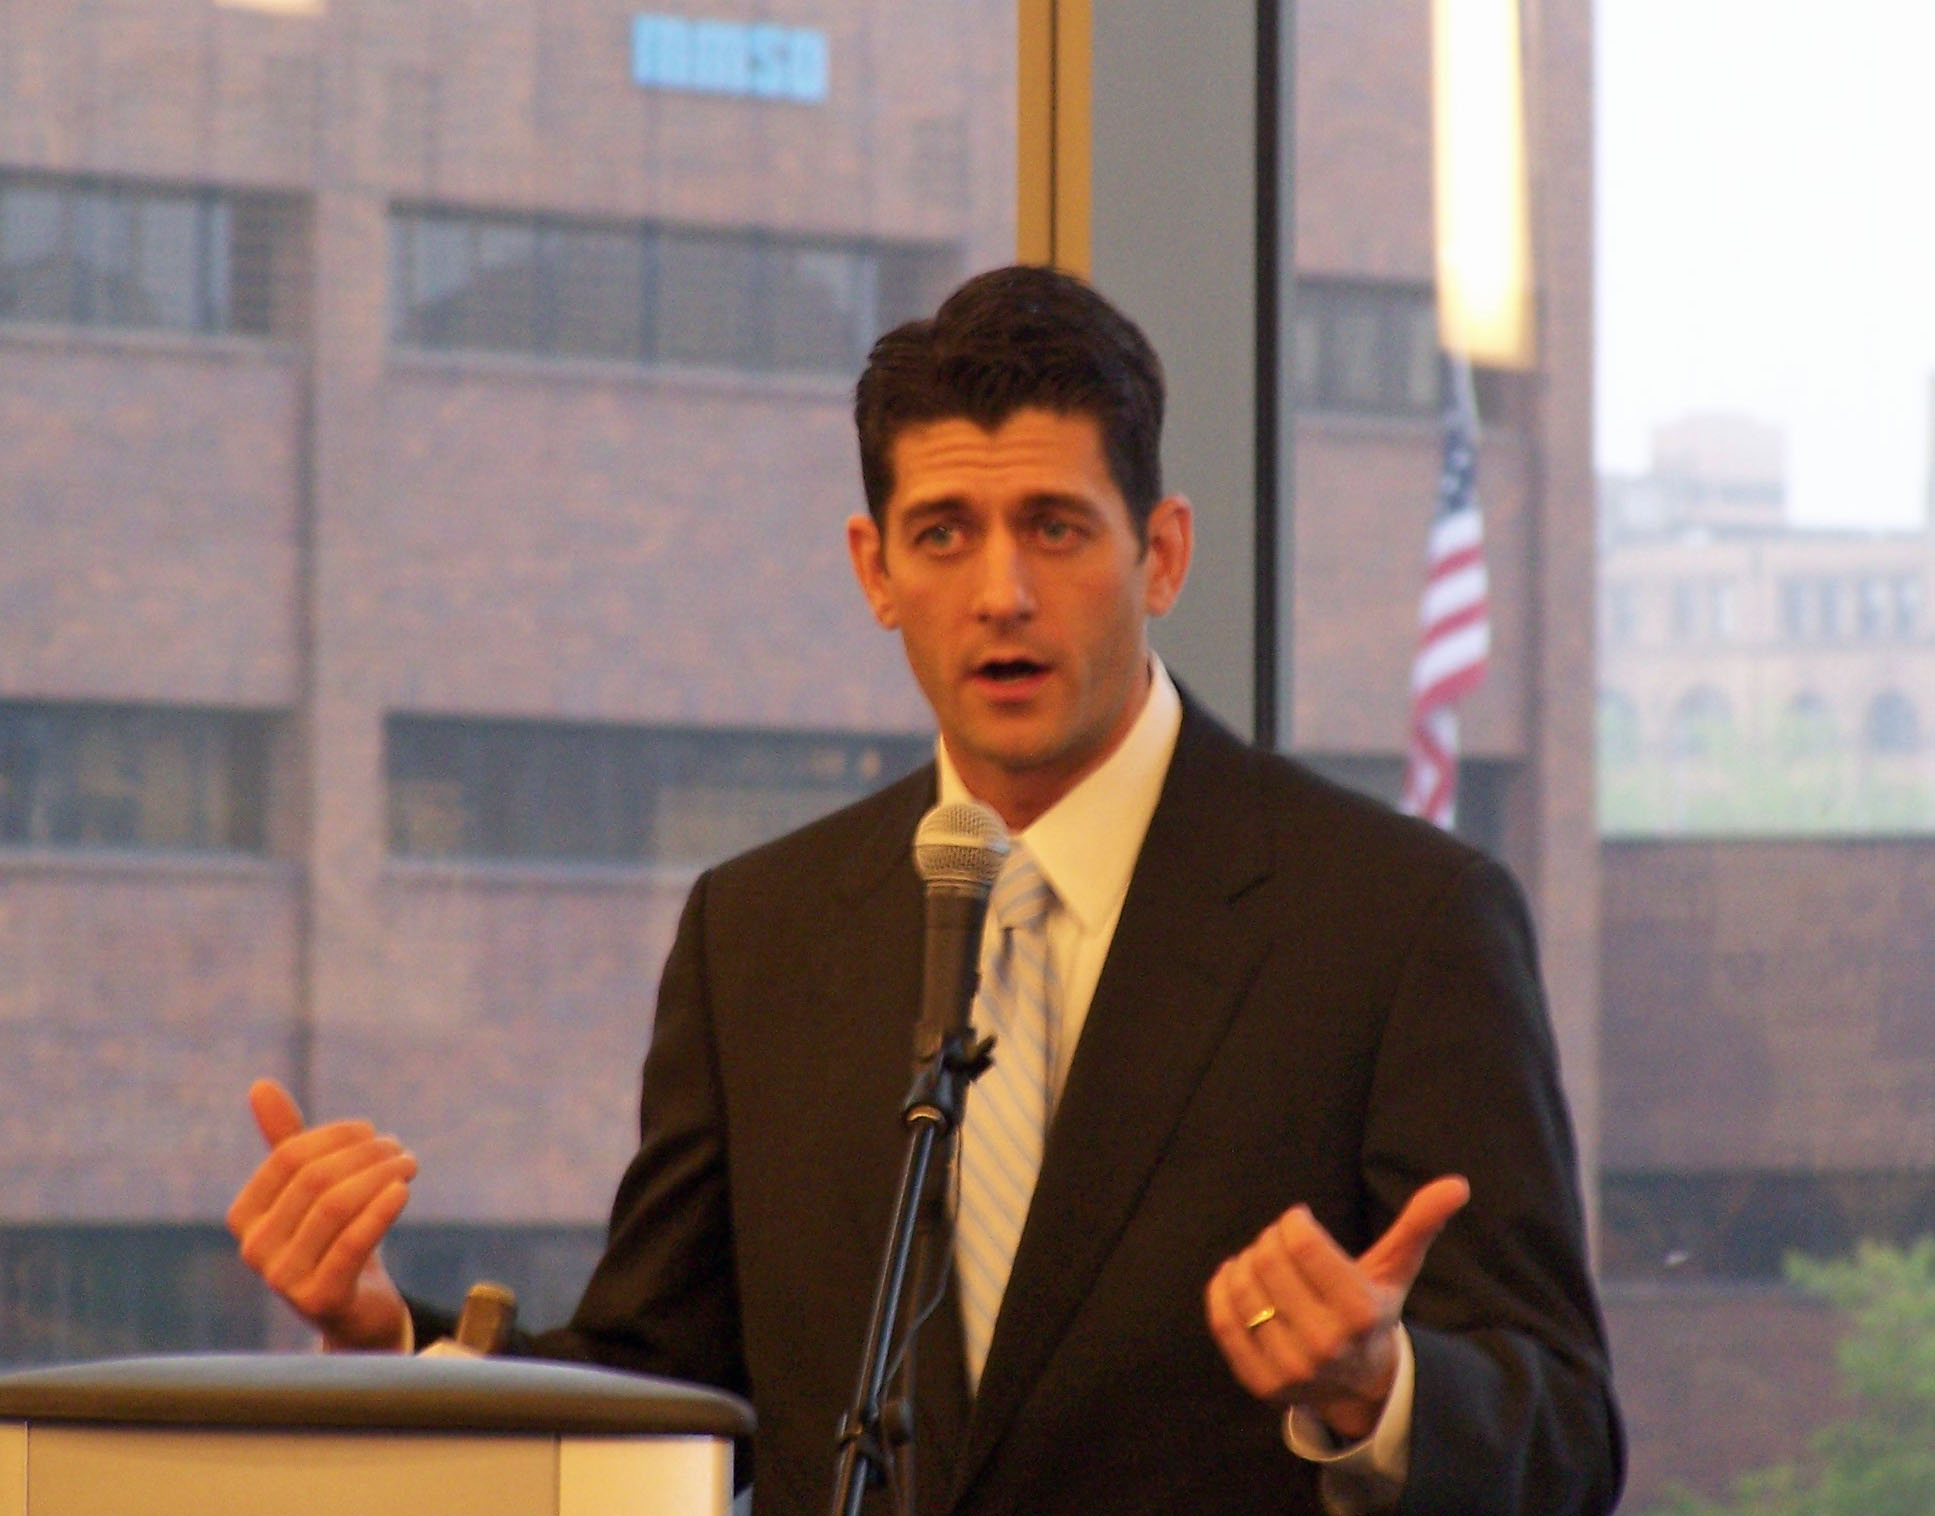 Rep. Paul Ryan (Photo: WRN)